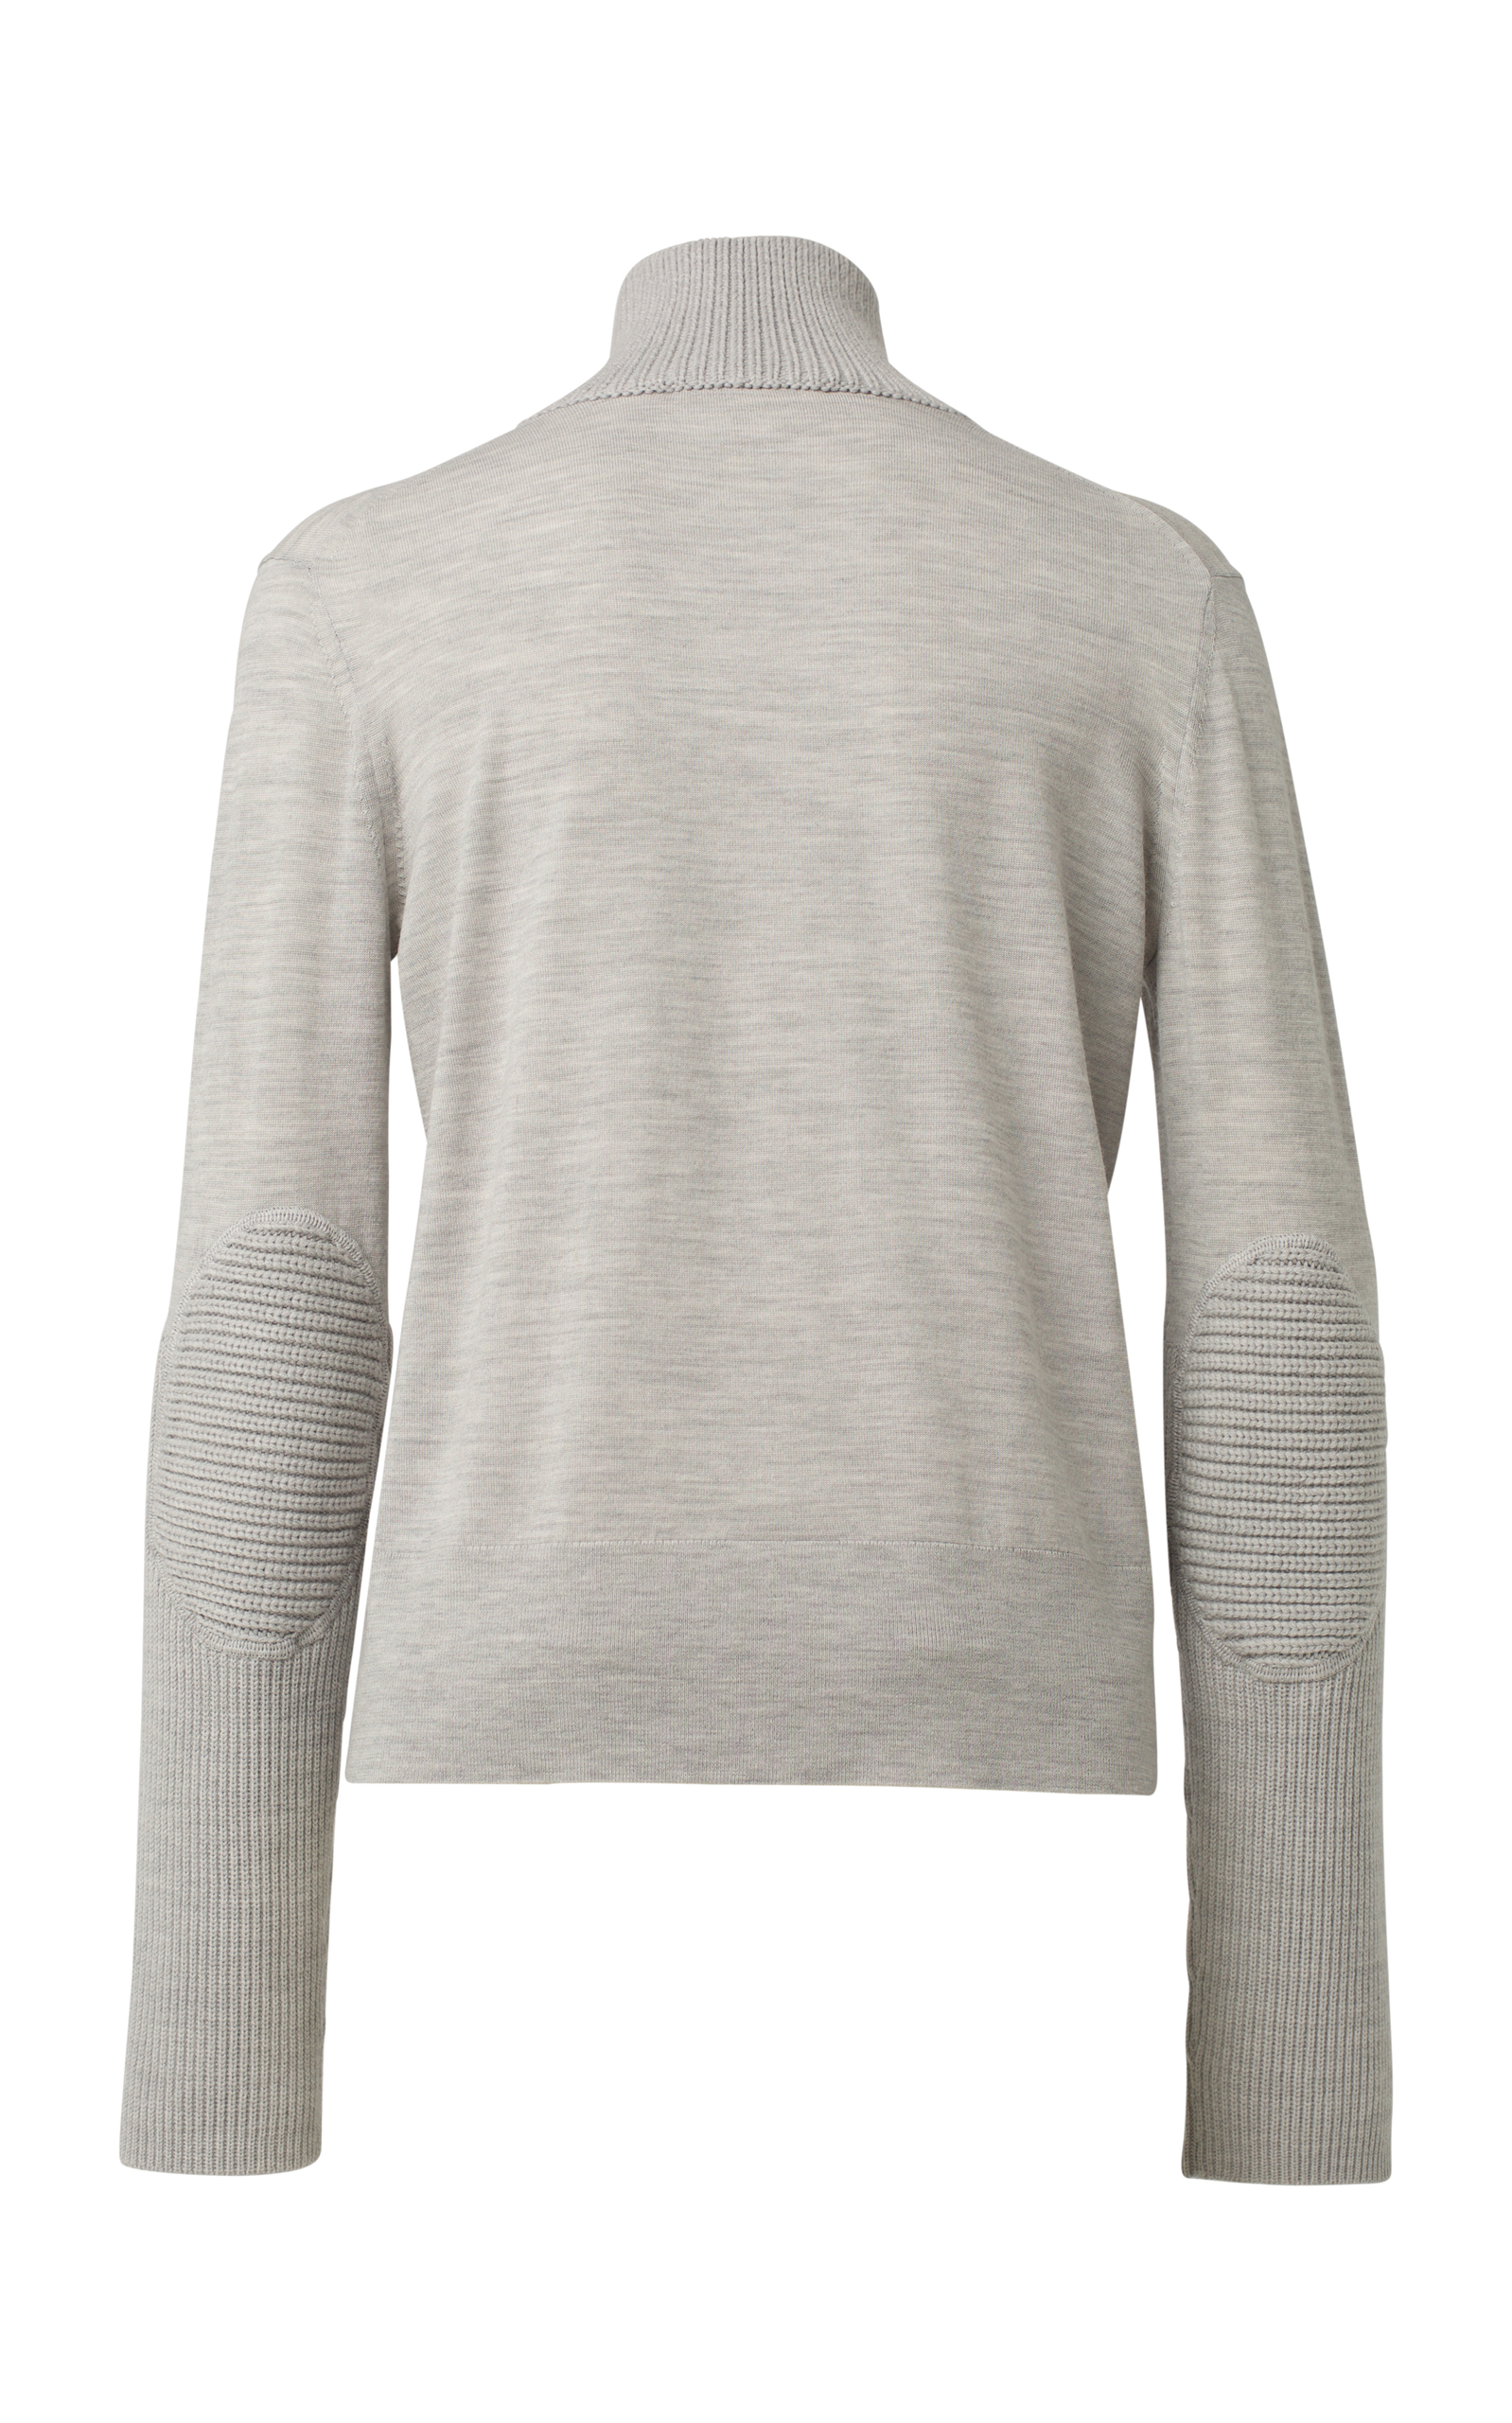 0dee3a63da large_dorothee-schumacher-print-magnified-moment-wool-turtle-neck-sweater.jpg